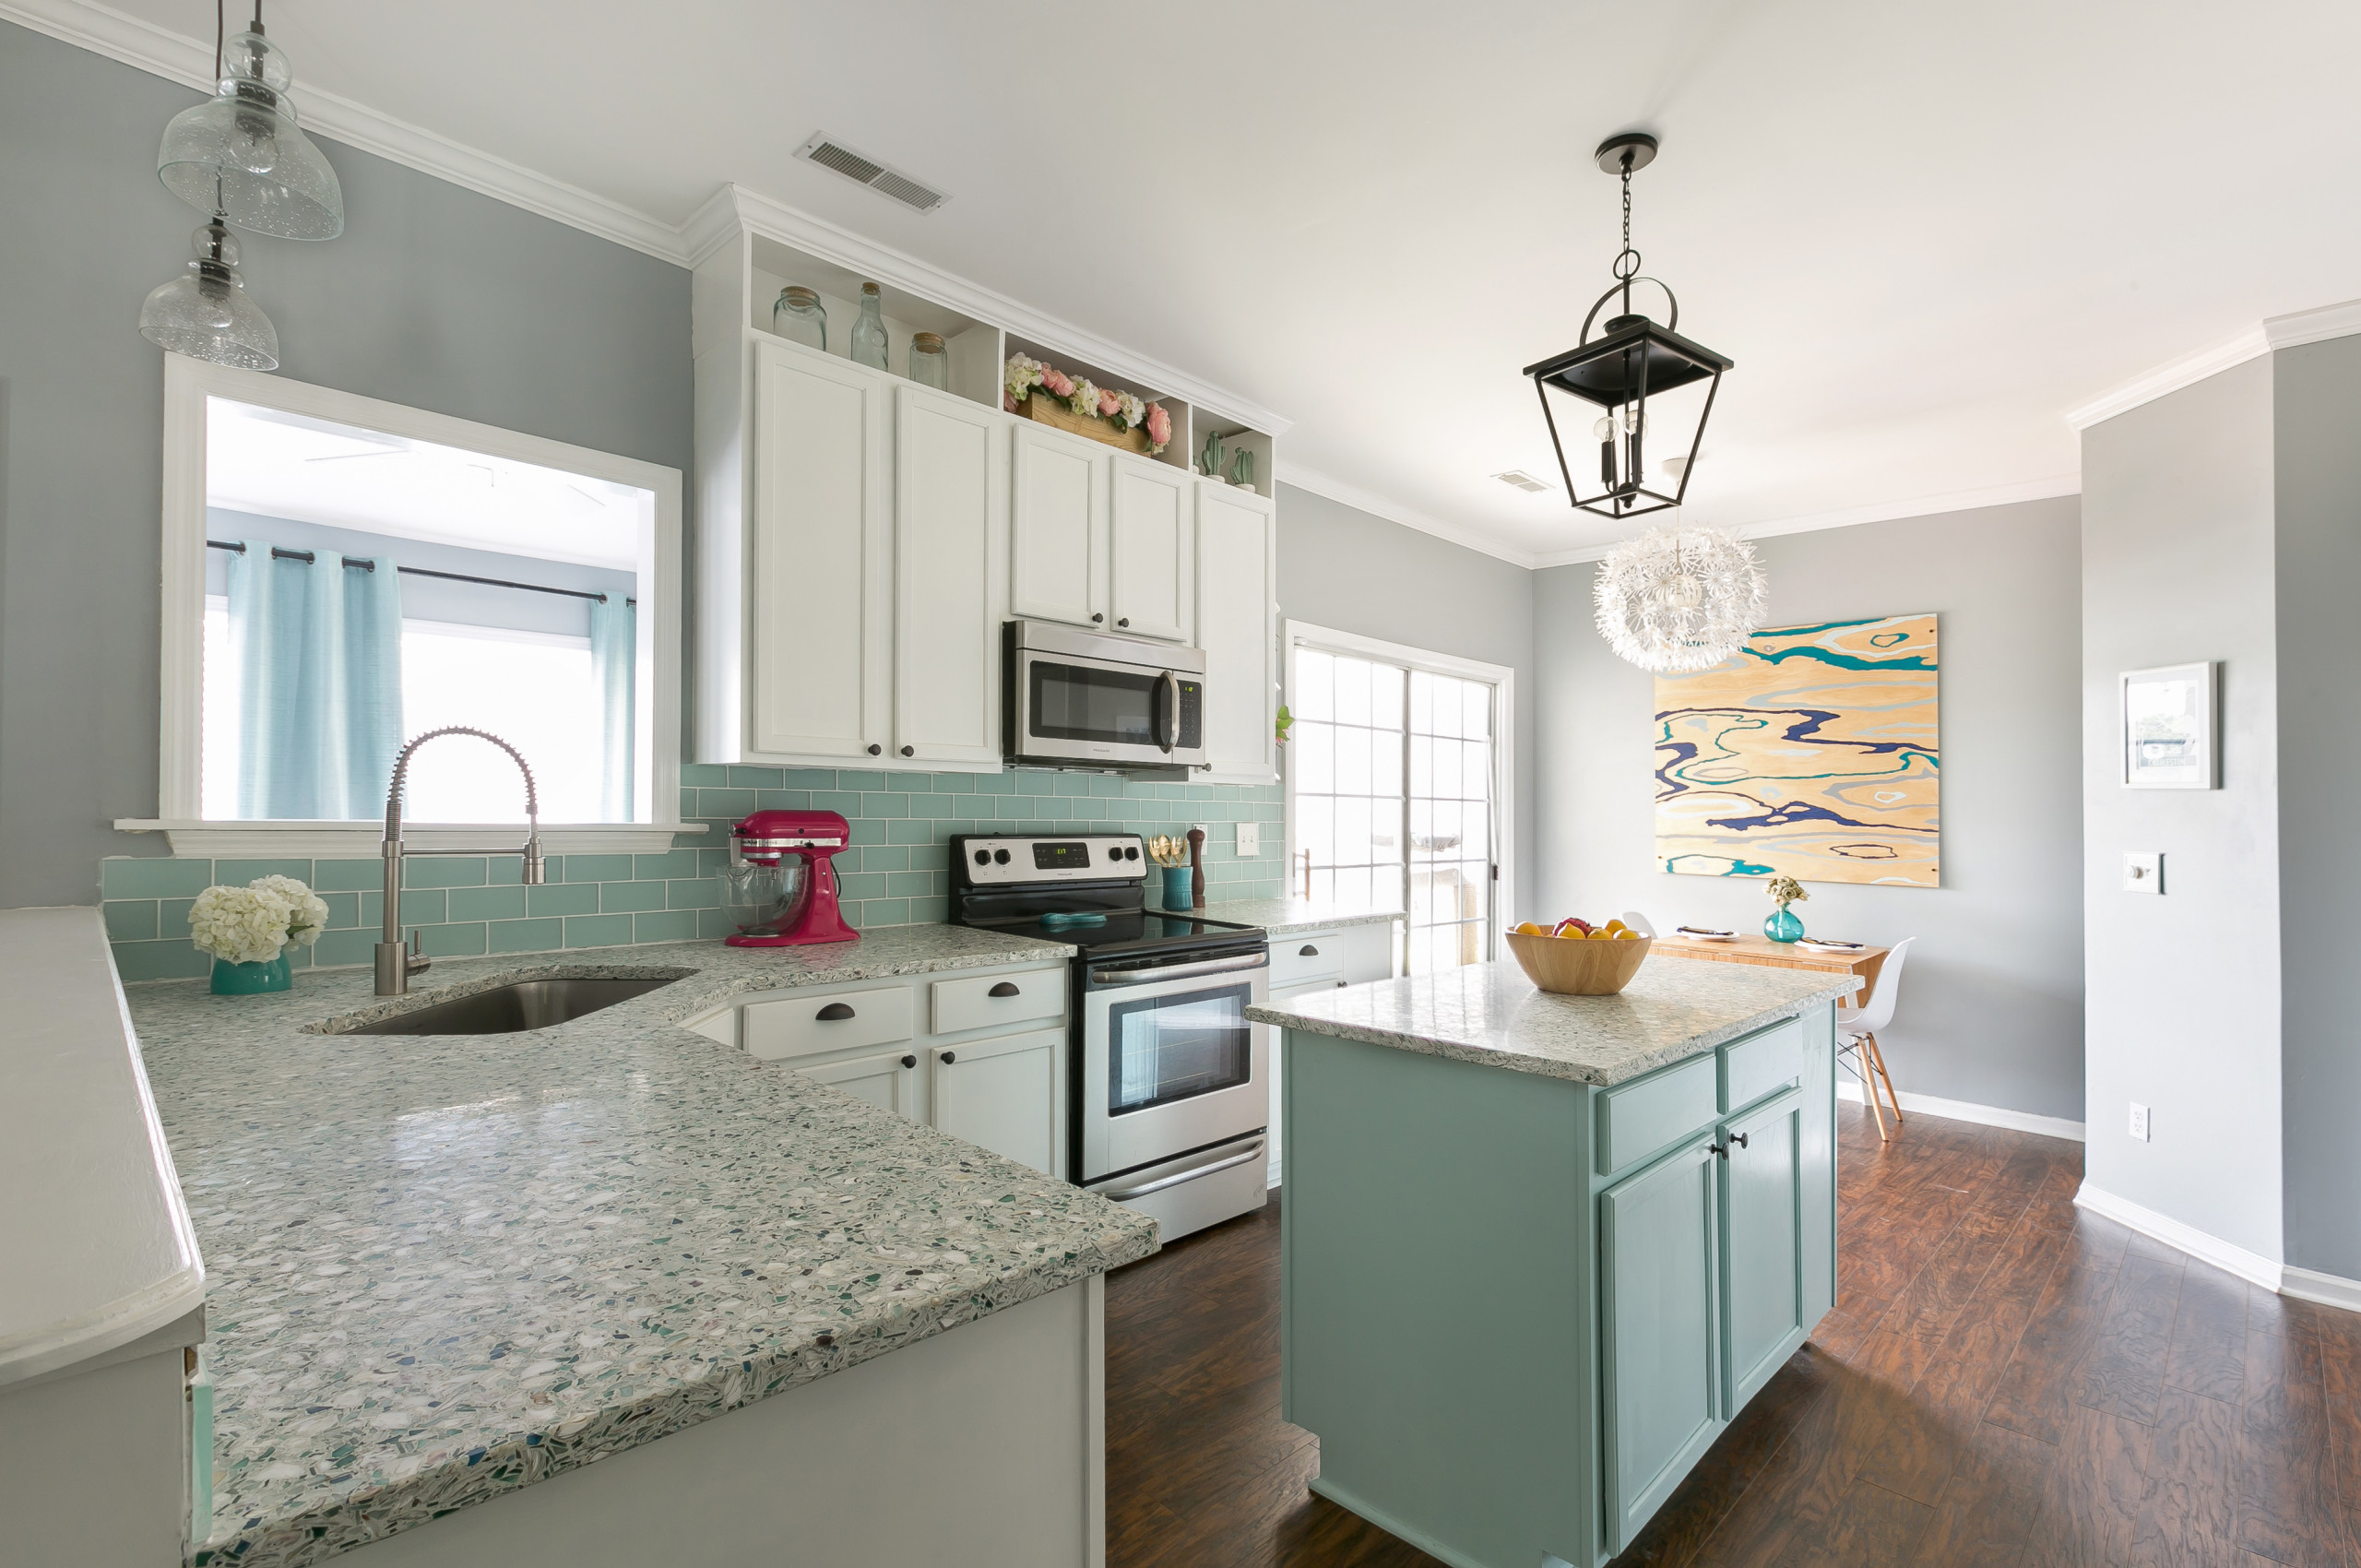 75 Beautiful Coastal Kitchen With Recycled Glass Countertops Pictures Ideas November 2020 Houzz